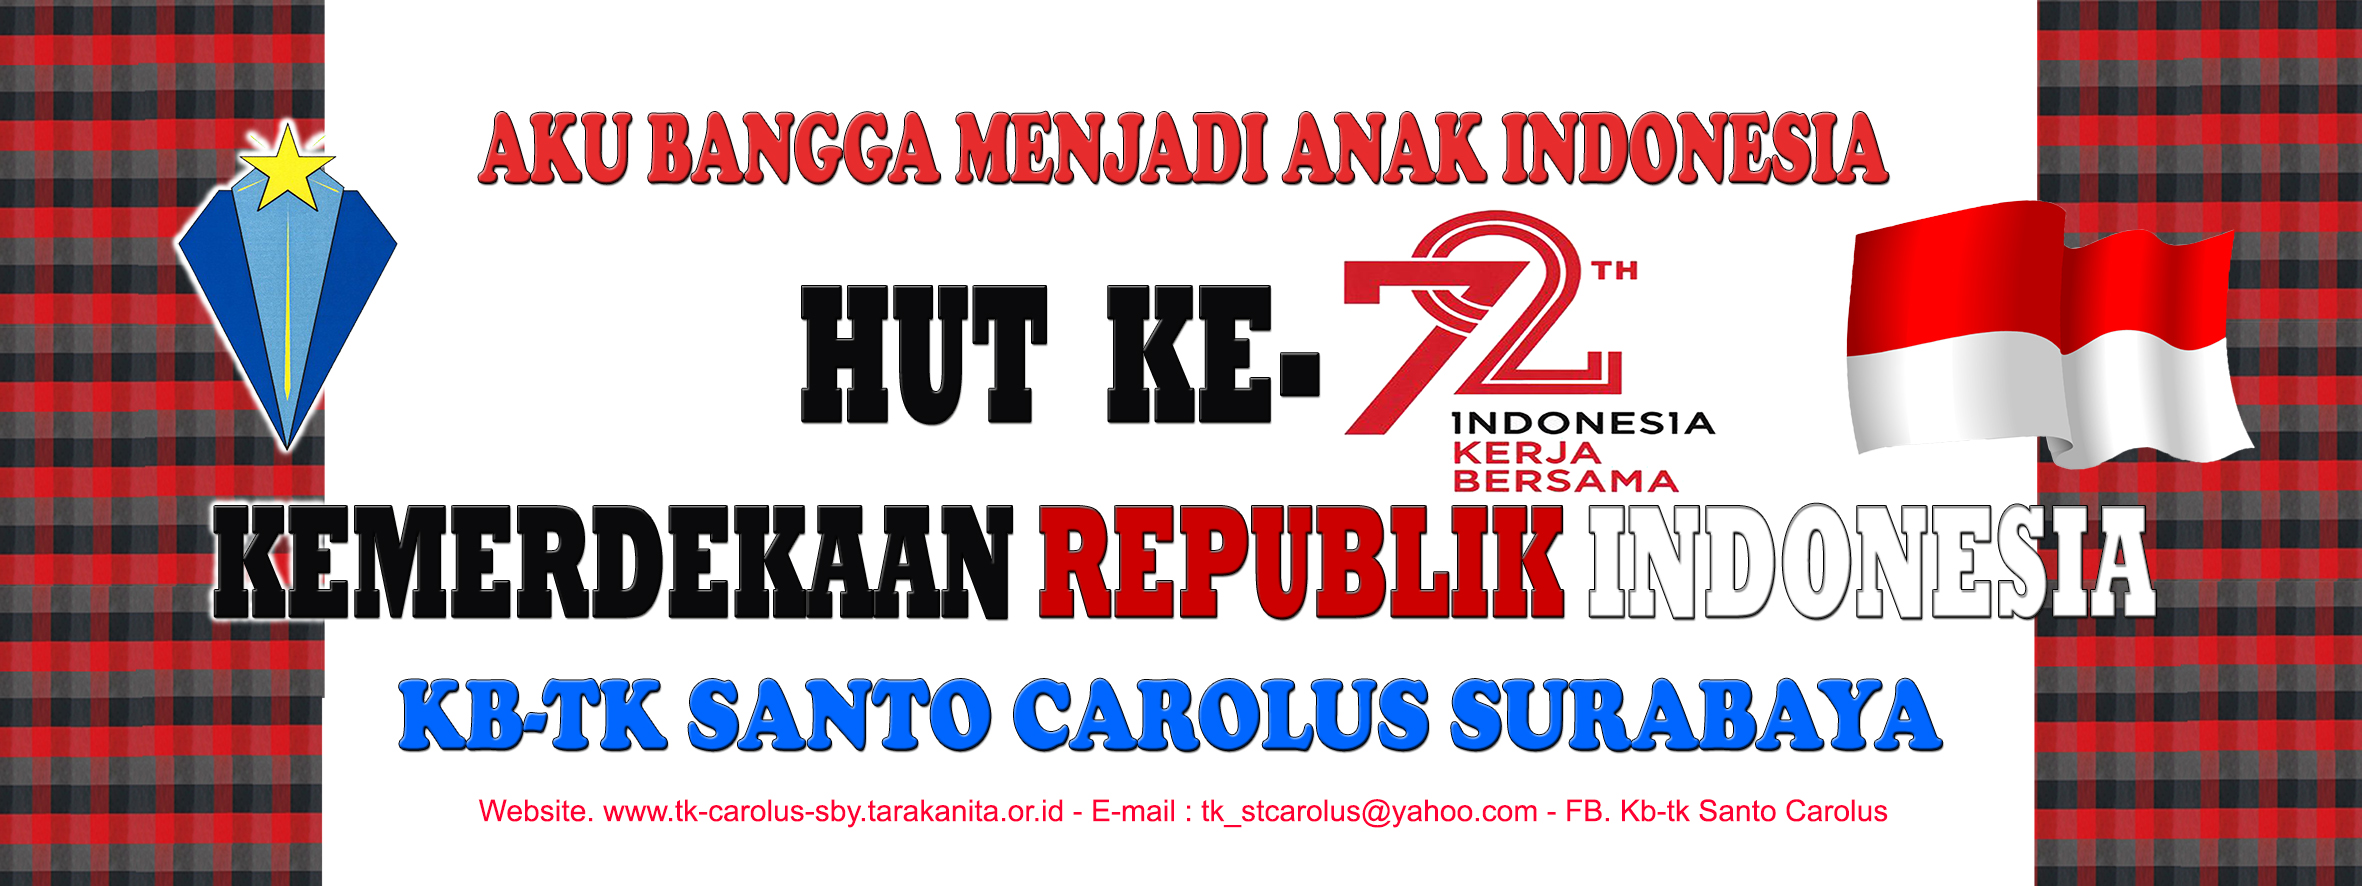 Menyongsong HUT ke 72 Republik Indonesia